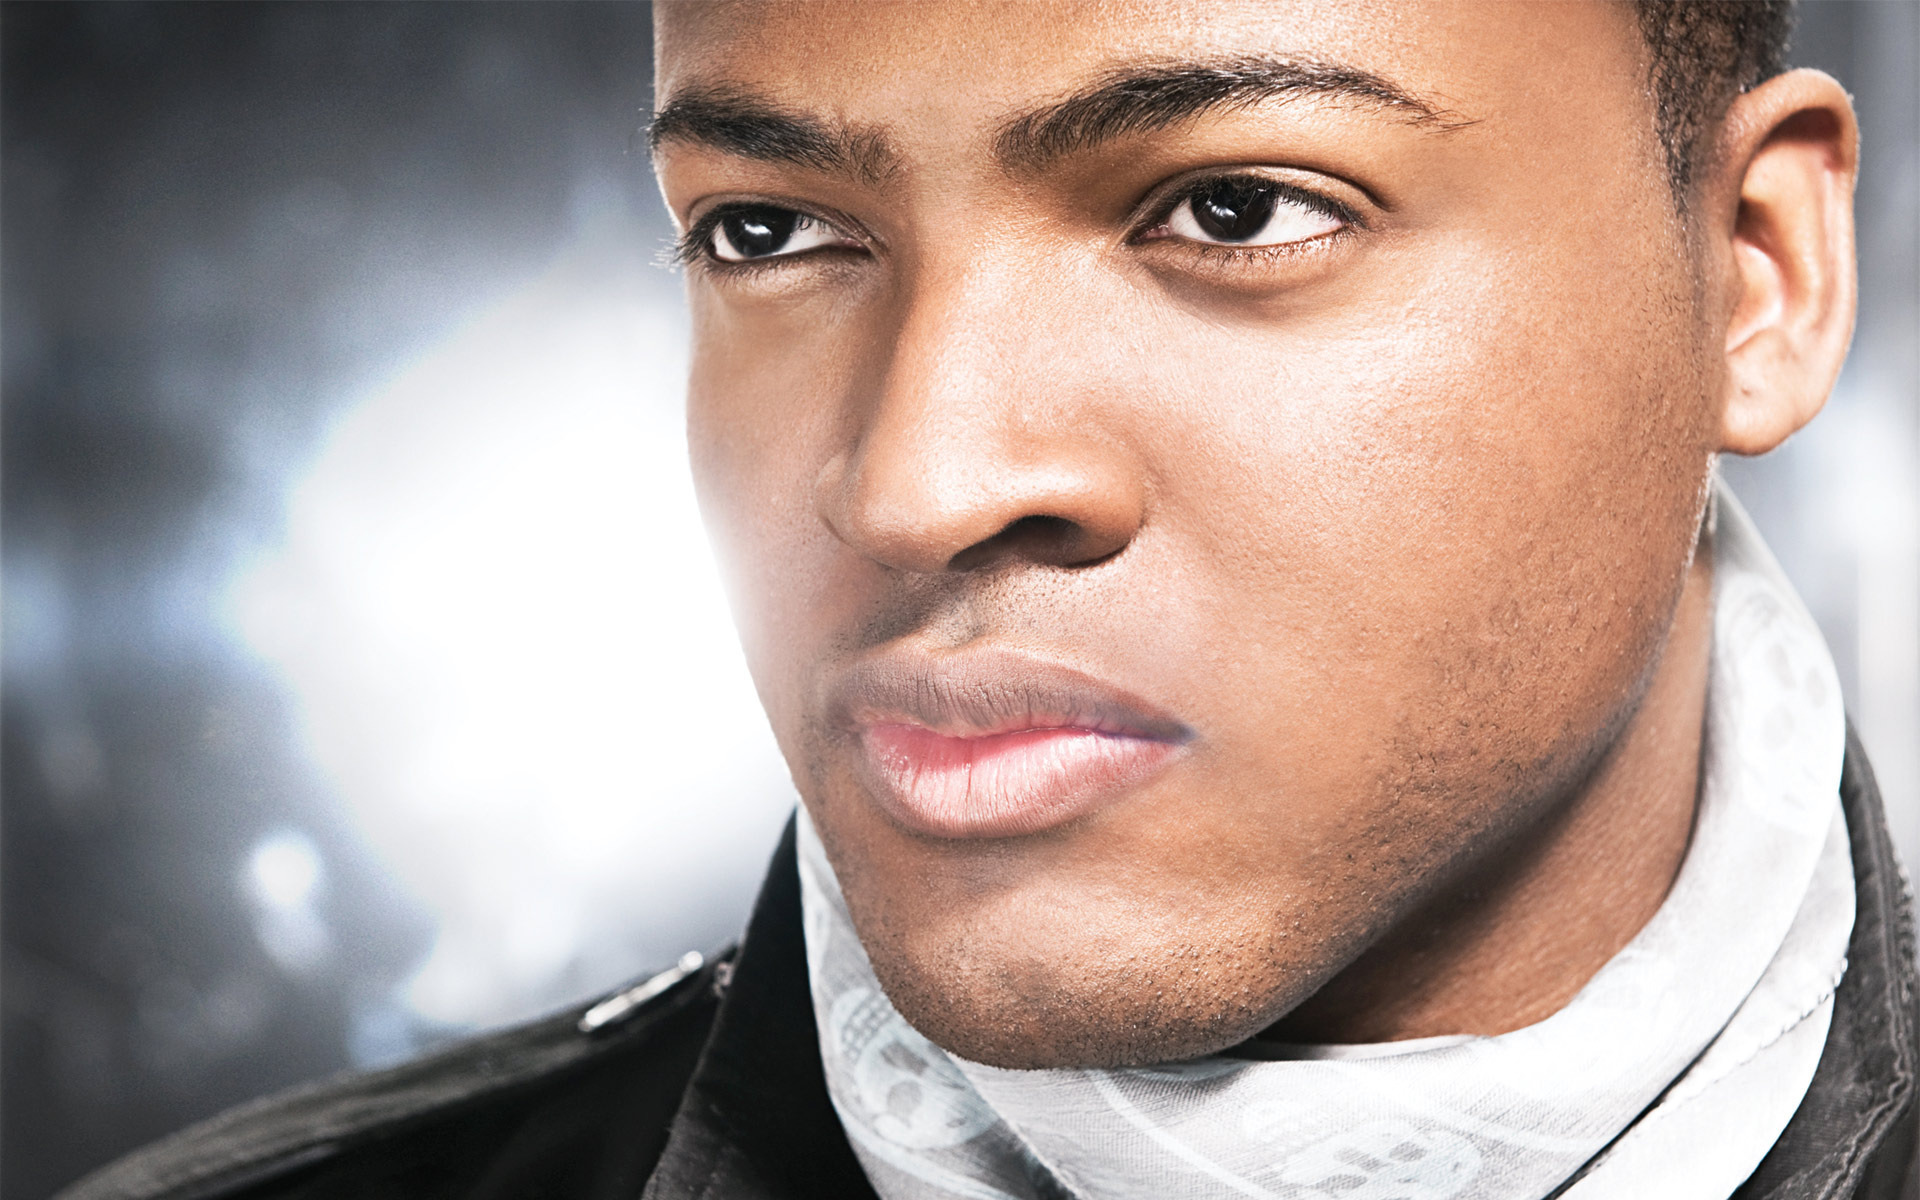 Taio Cruz Backgrounds on Wallpapers Vista